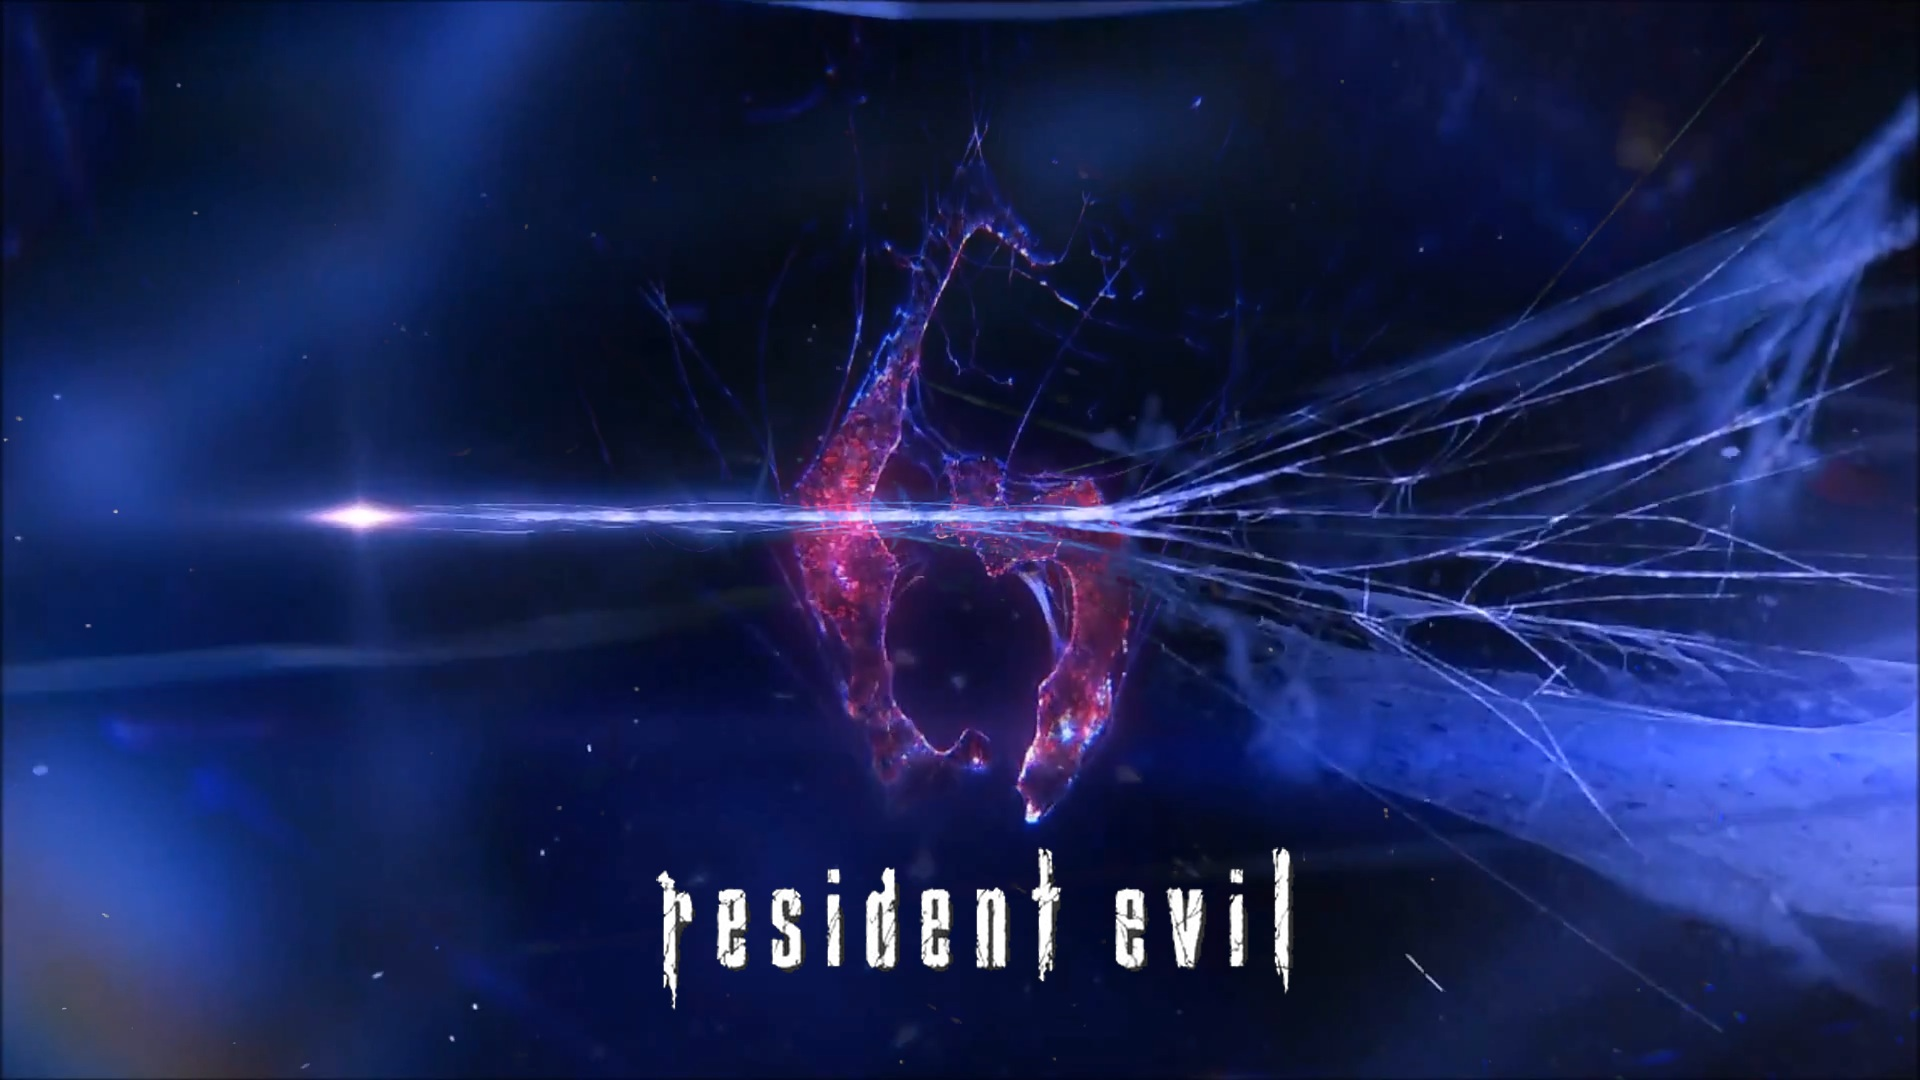 Free Download Evil Wallpapers 1080p Resident Evil 6 Wallpaper Logo